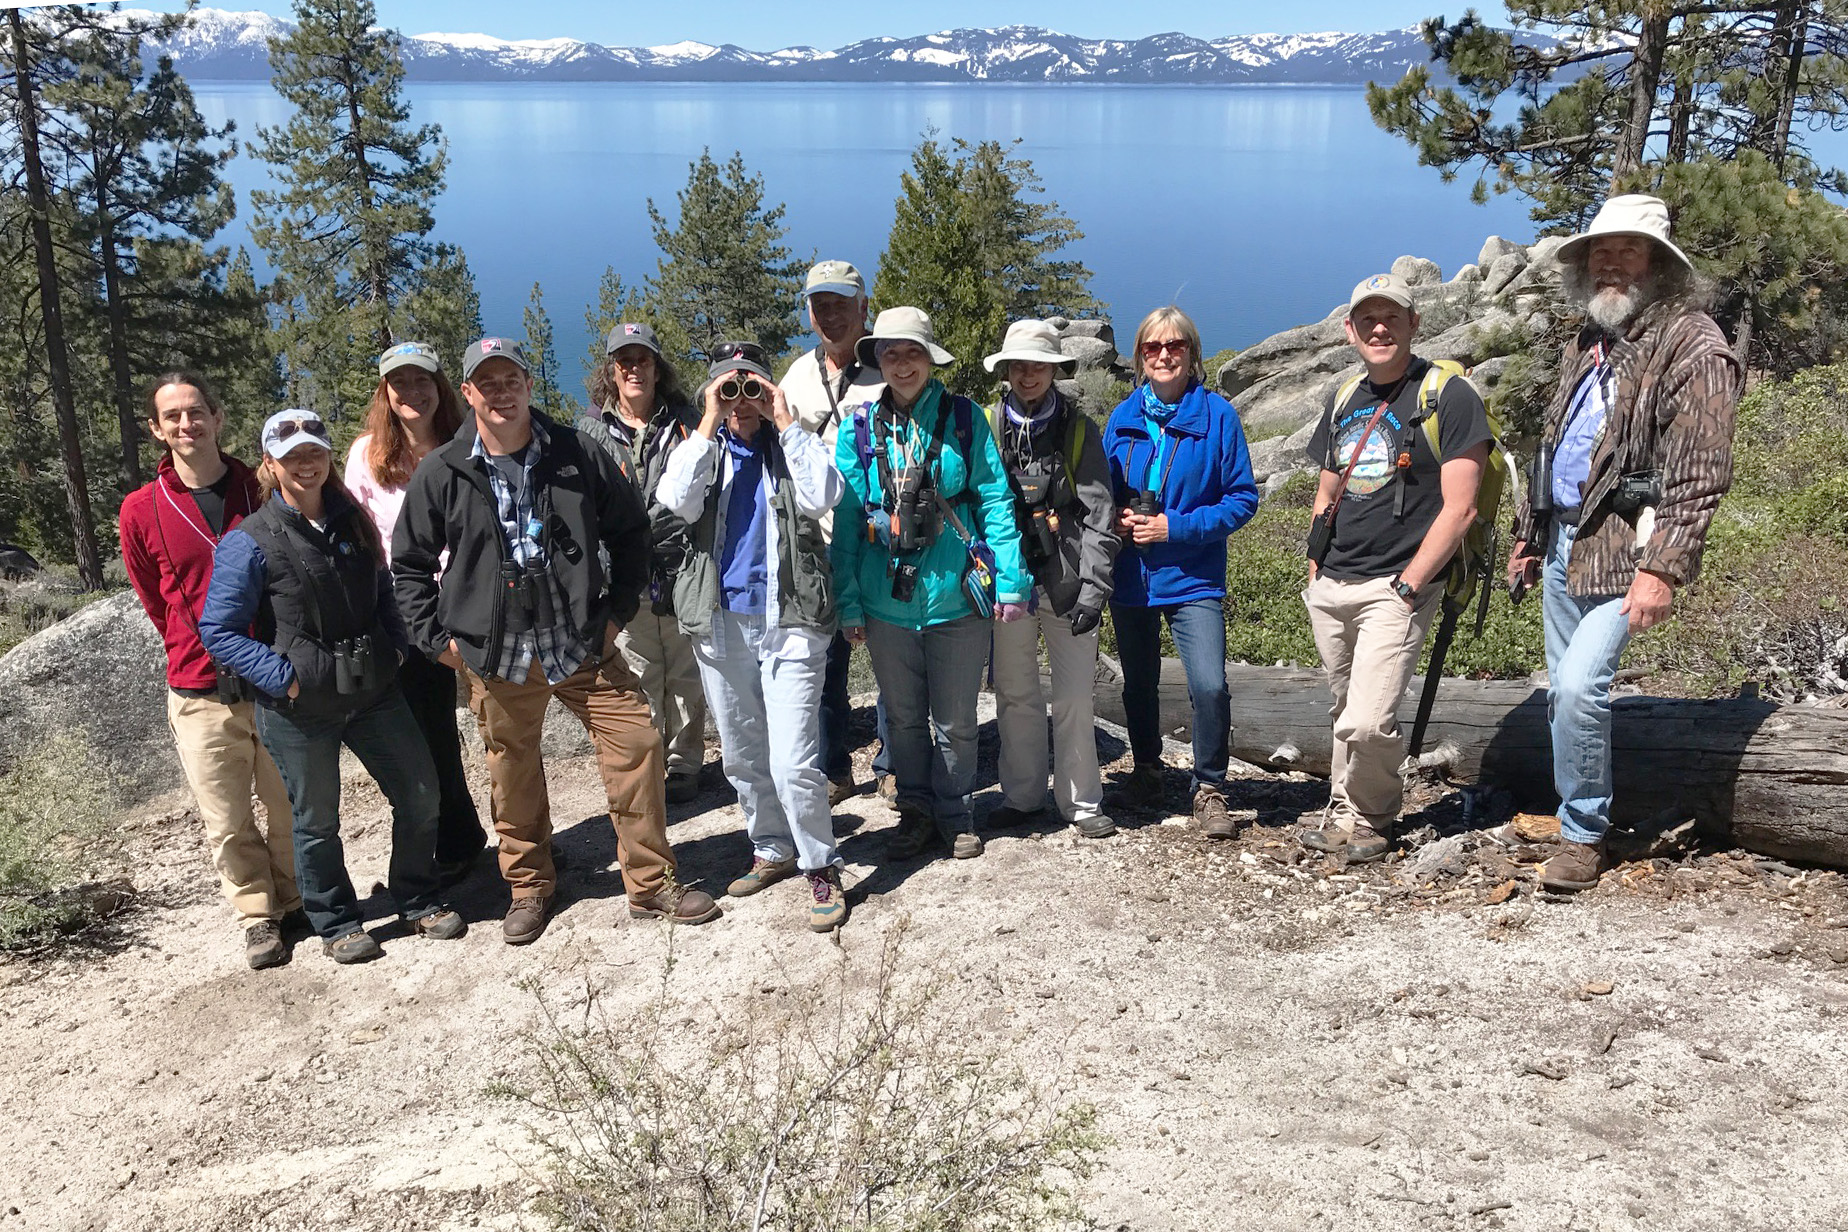 The Spooner Summit field trip reaching a Lake Tahoe vista. Photo by Greg Hachigian.